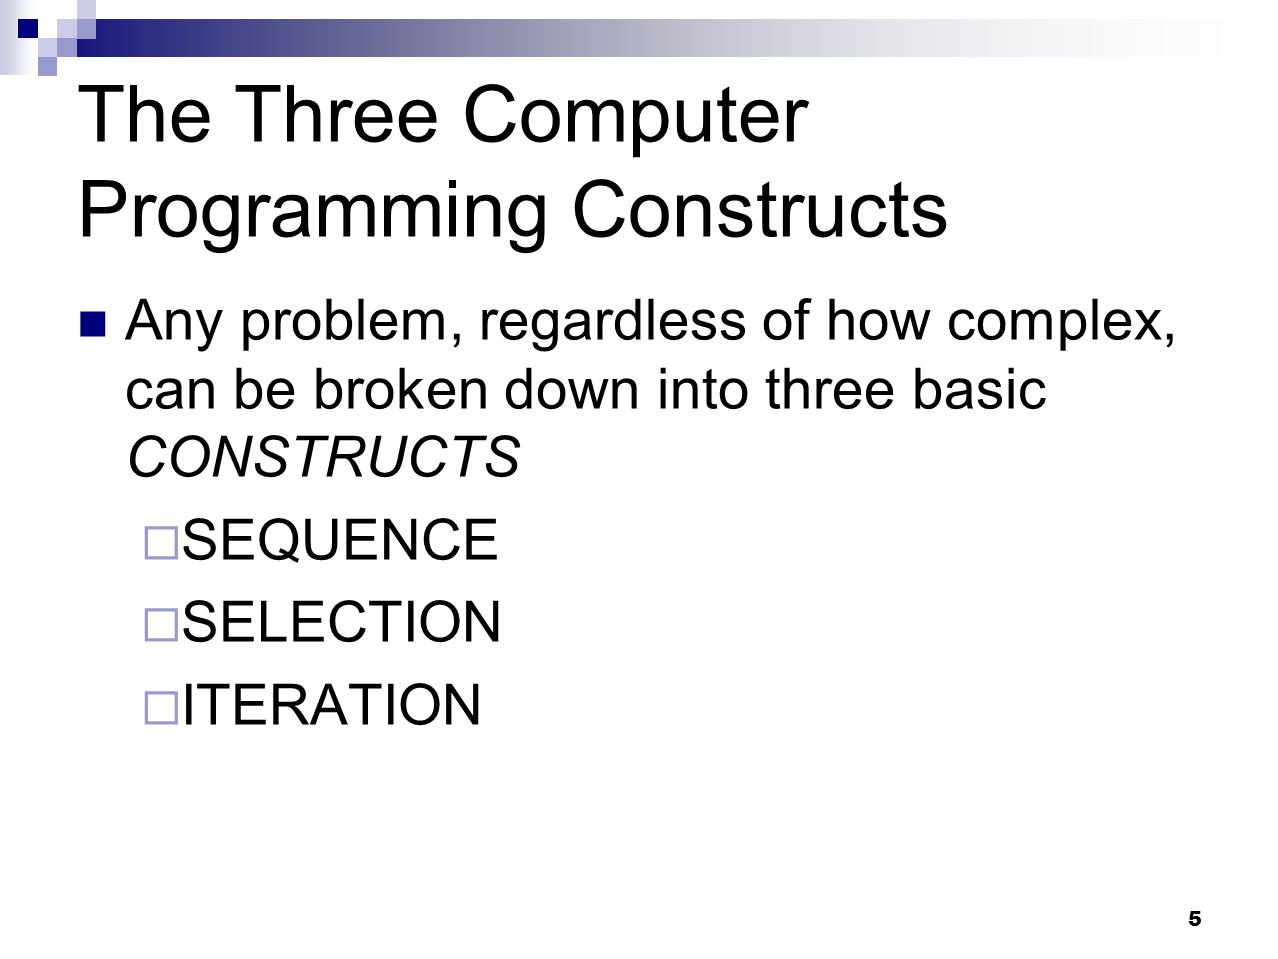 The Three Computer Programming Constructs